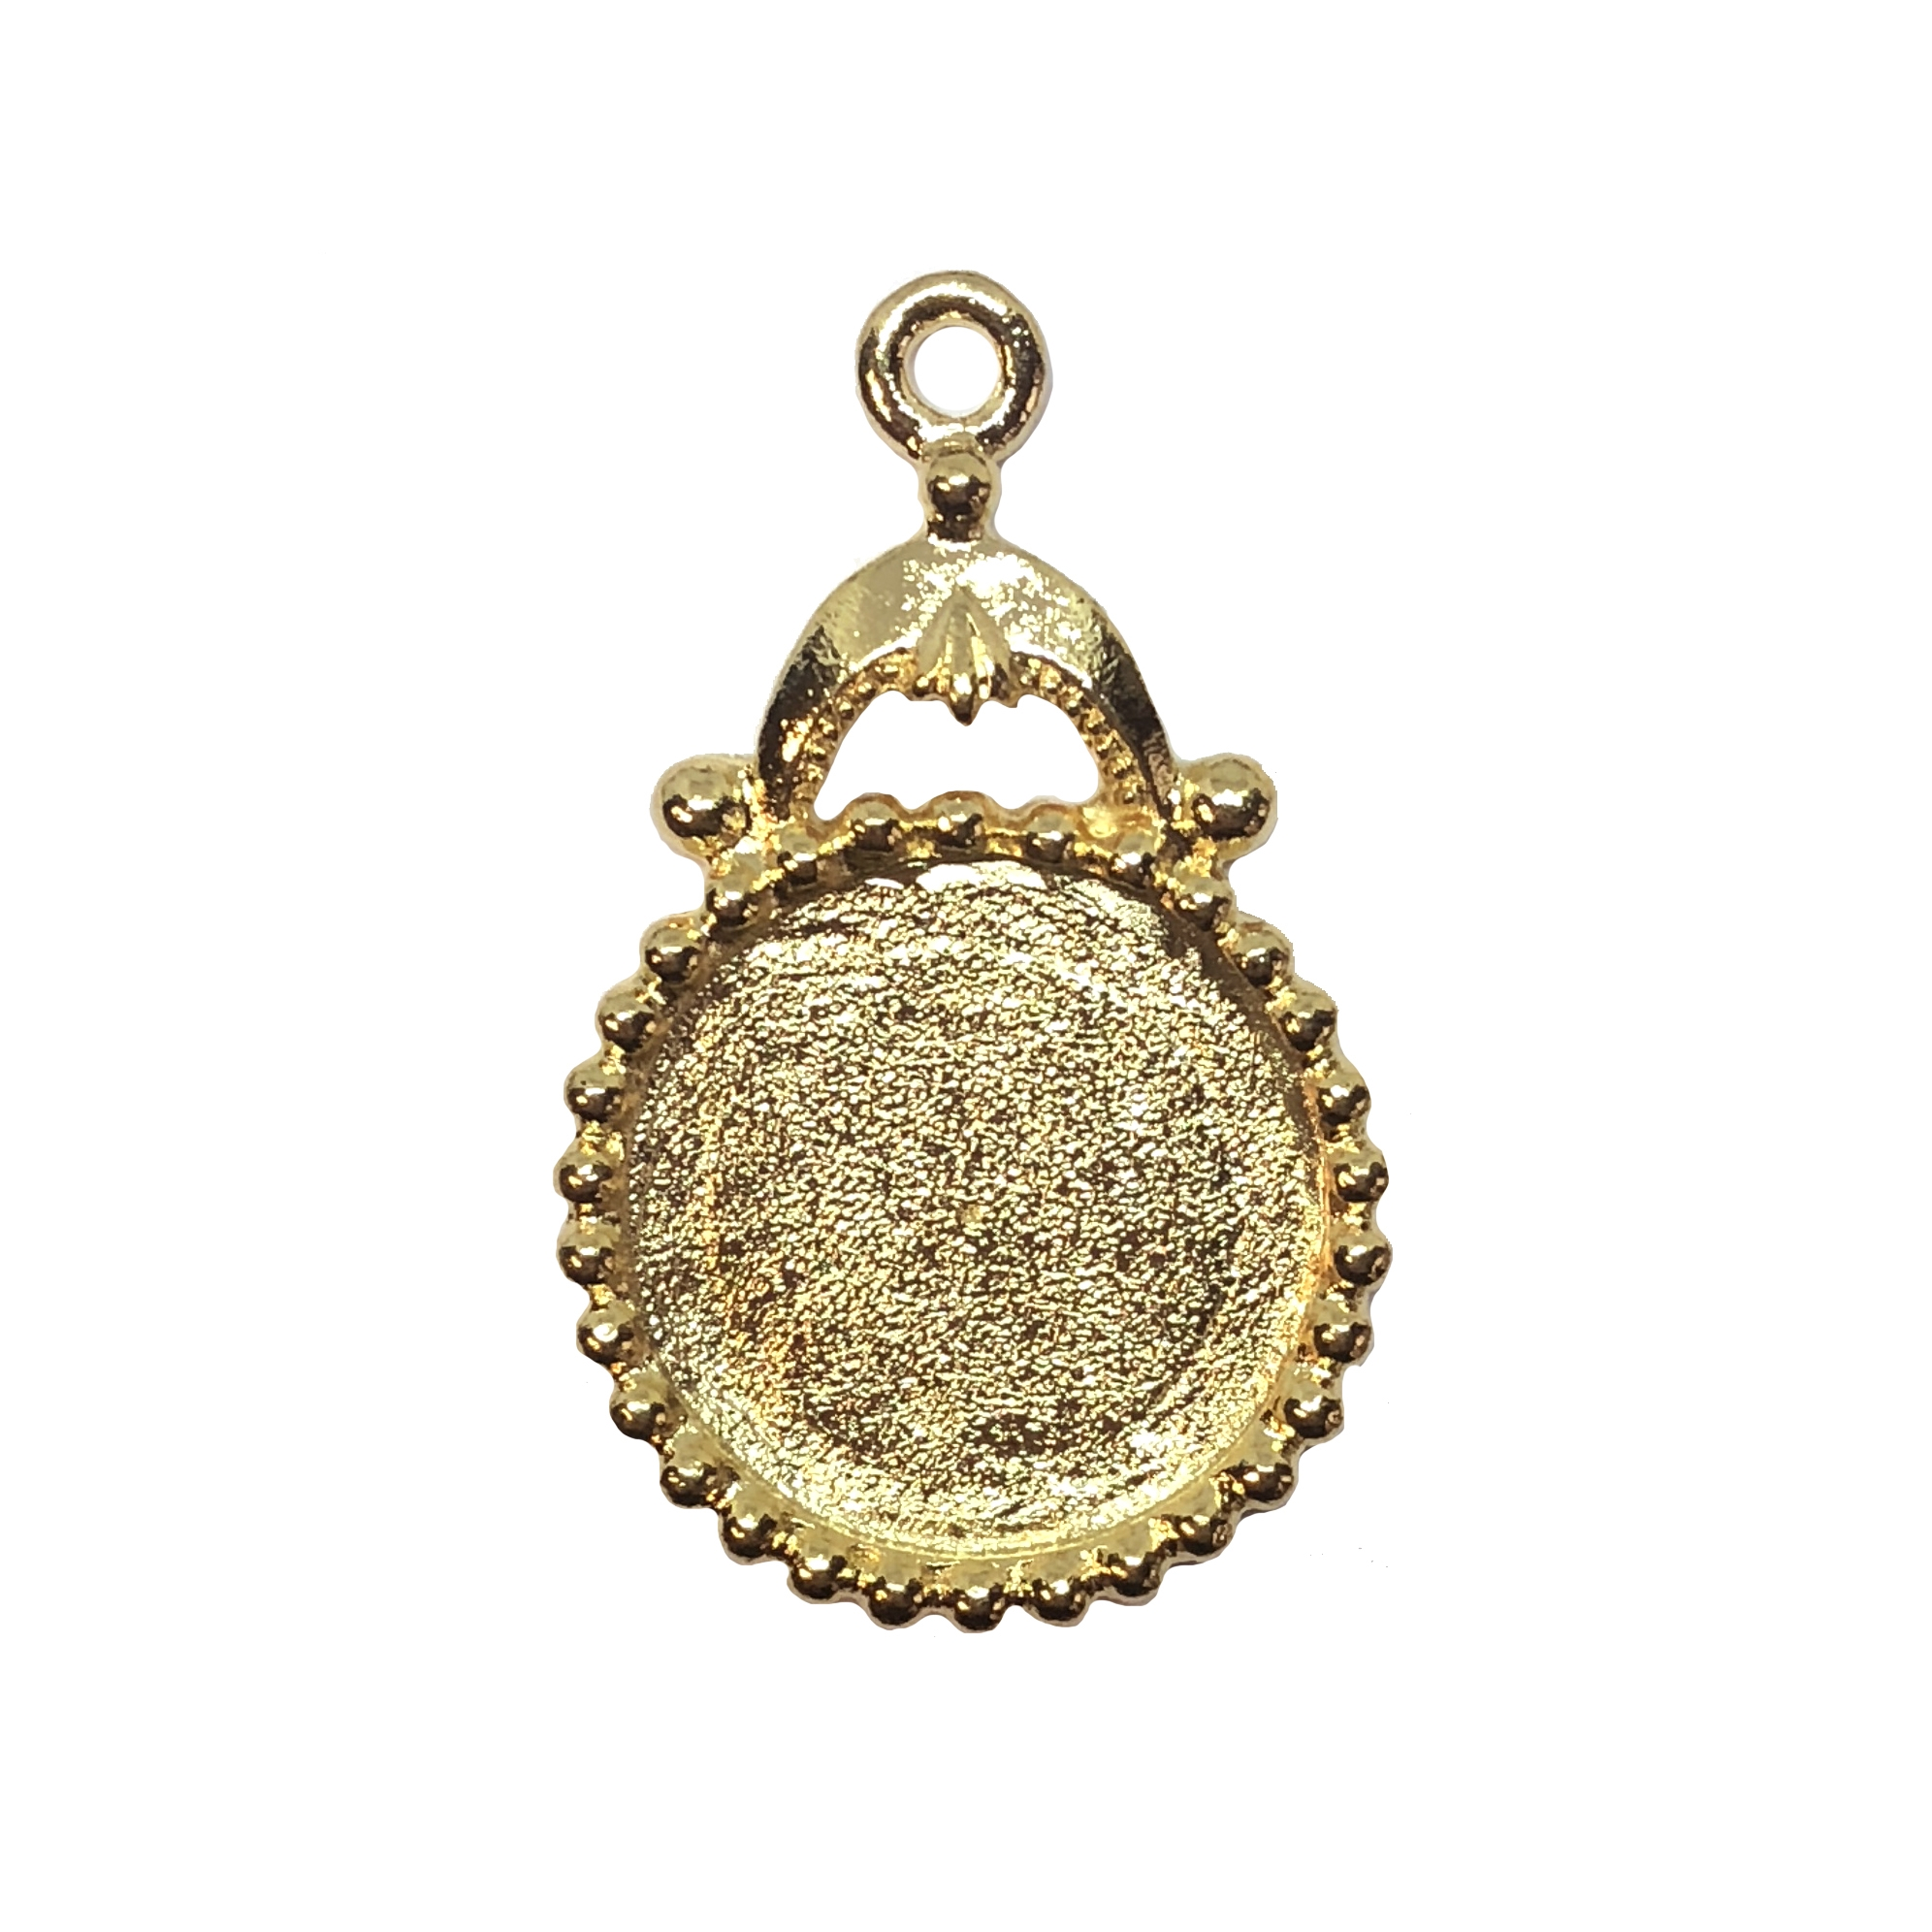 victorian style pendant, B'sue by 1928, Victorian mount, 18mm mount, stone mount, 22K gold finish pewter, gold, mount, vintage style, lead free pewter, vintage castings, US made, vintage supplies, 1928 Jewelry, B'sue Boutiques, gold finish, 05682